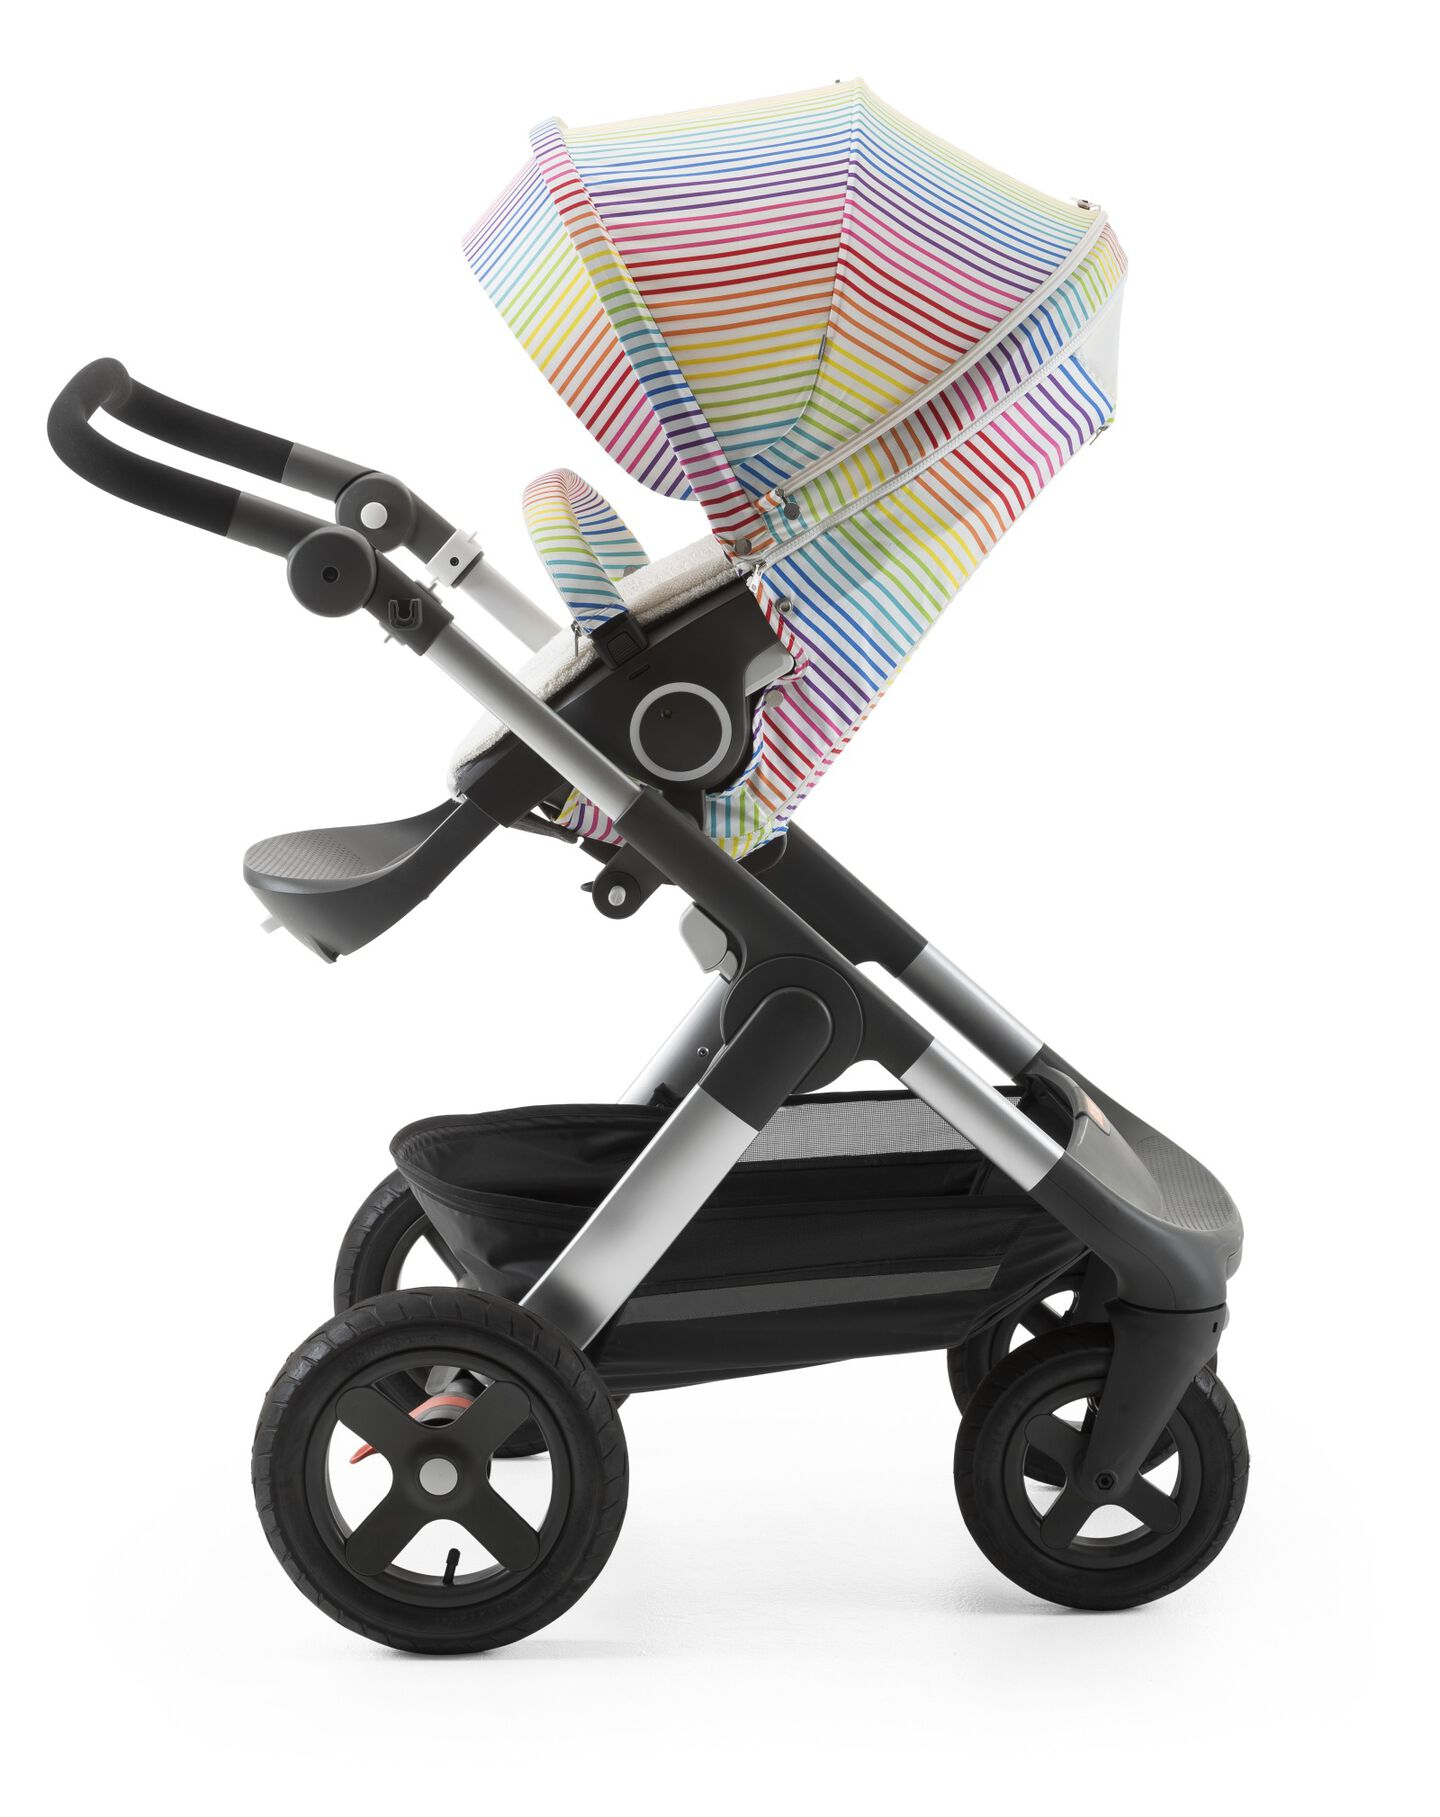 Stokke® Trailz™ with Stokke® Stroller Seat and Multi Stripe Summer Kit